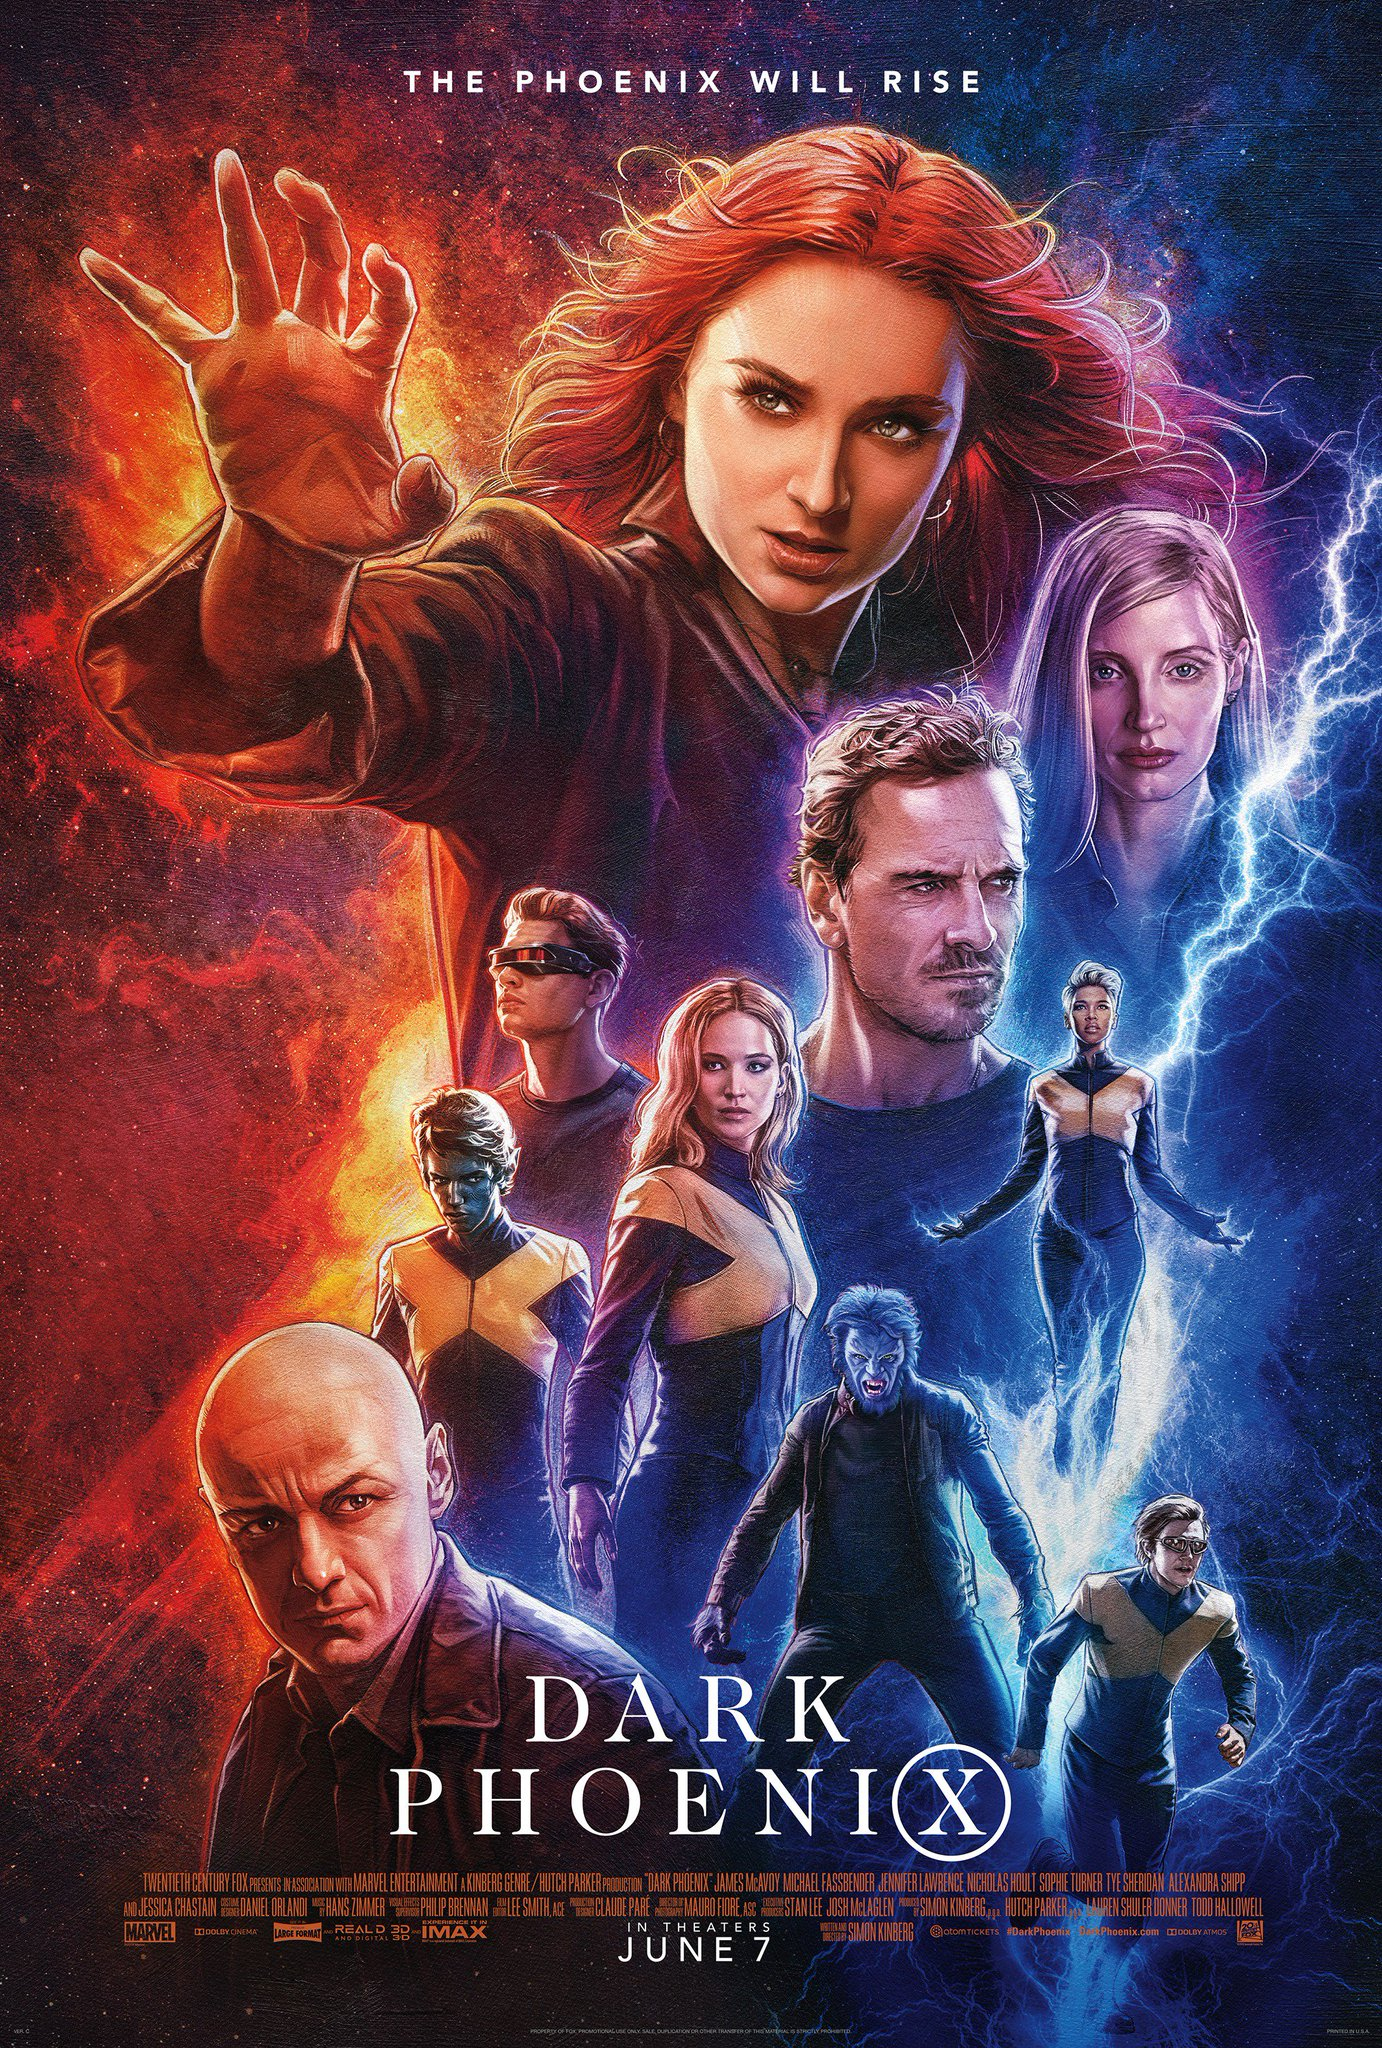 Dark Phoenix Gets A Cool Drew Struzan Inspired Poster Featuring